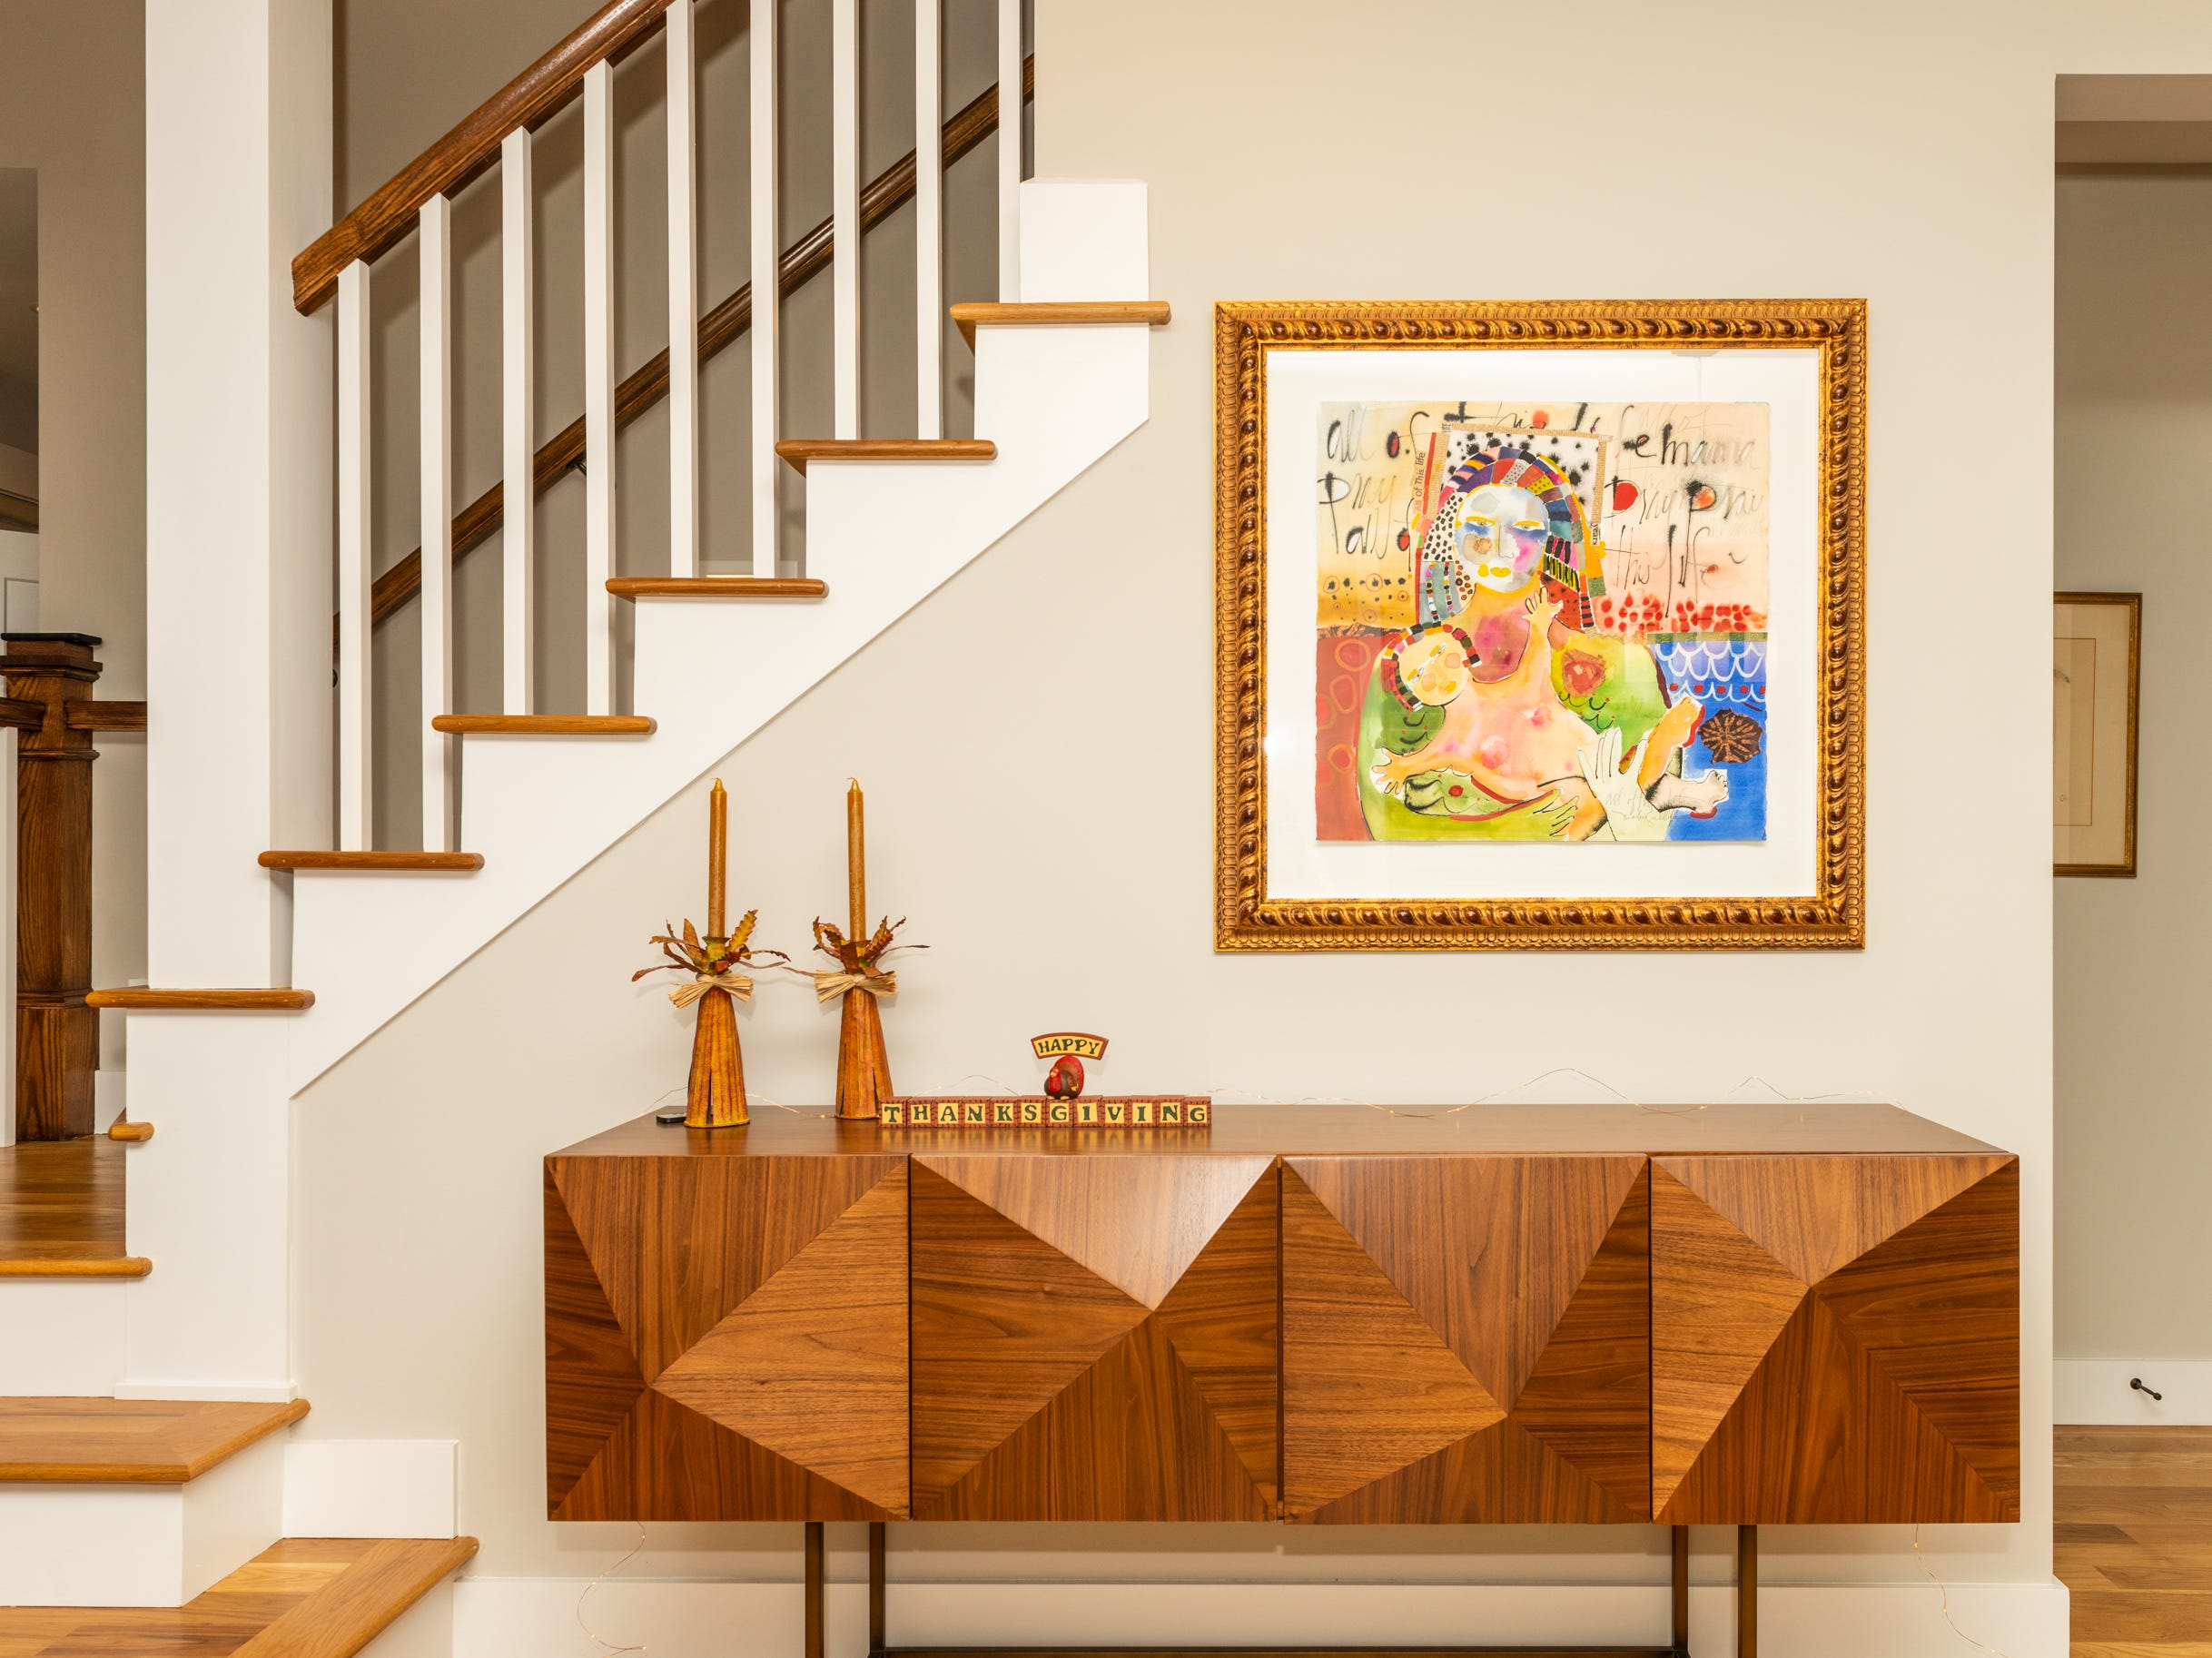 Artwork in the dining area at the home of Pat and Ron Hart in Asheville's Montford neighborhood.